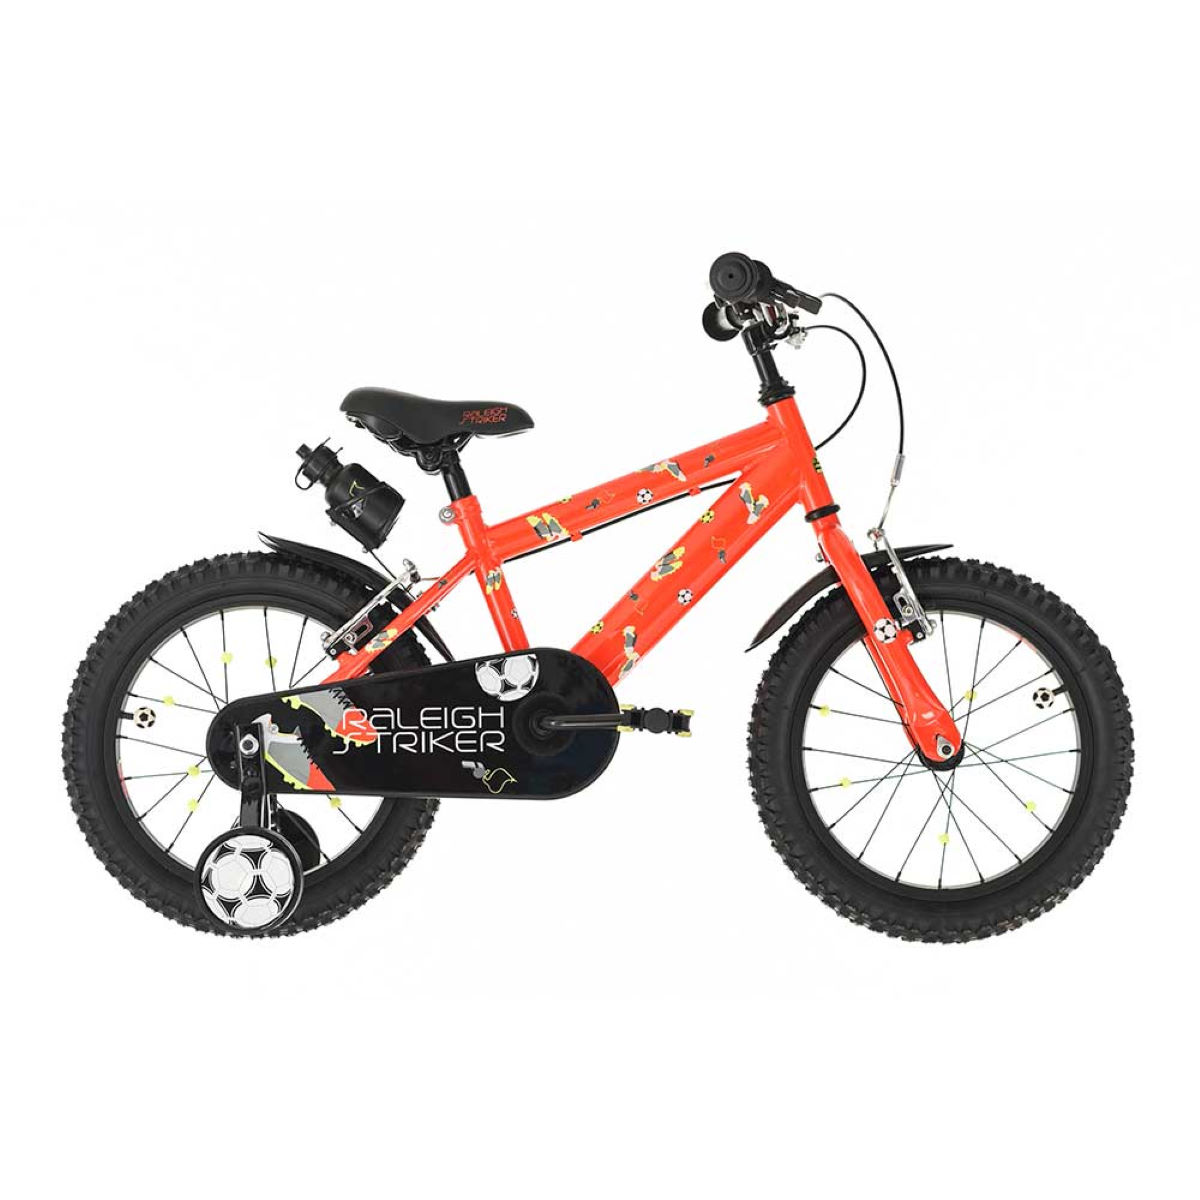 Vélo Enfant Raleigh Striker 14 (2017) - 14'' Wheel Orange